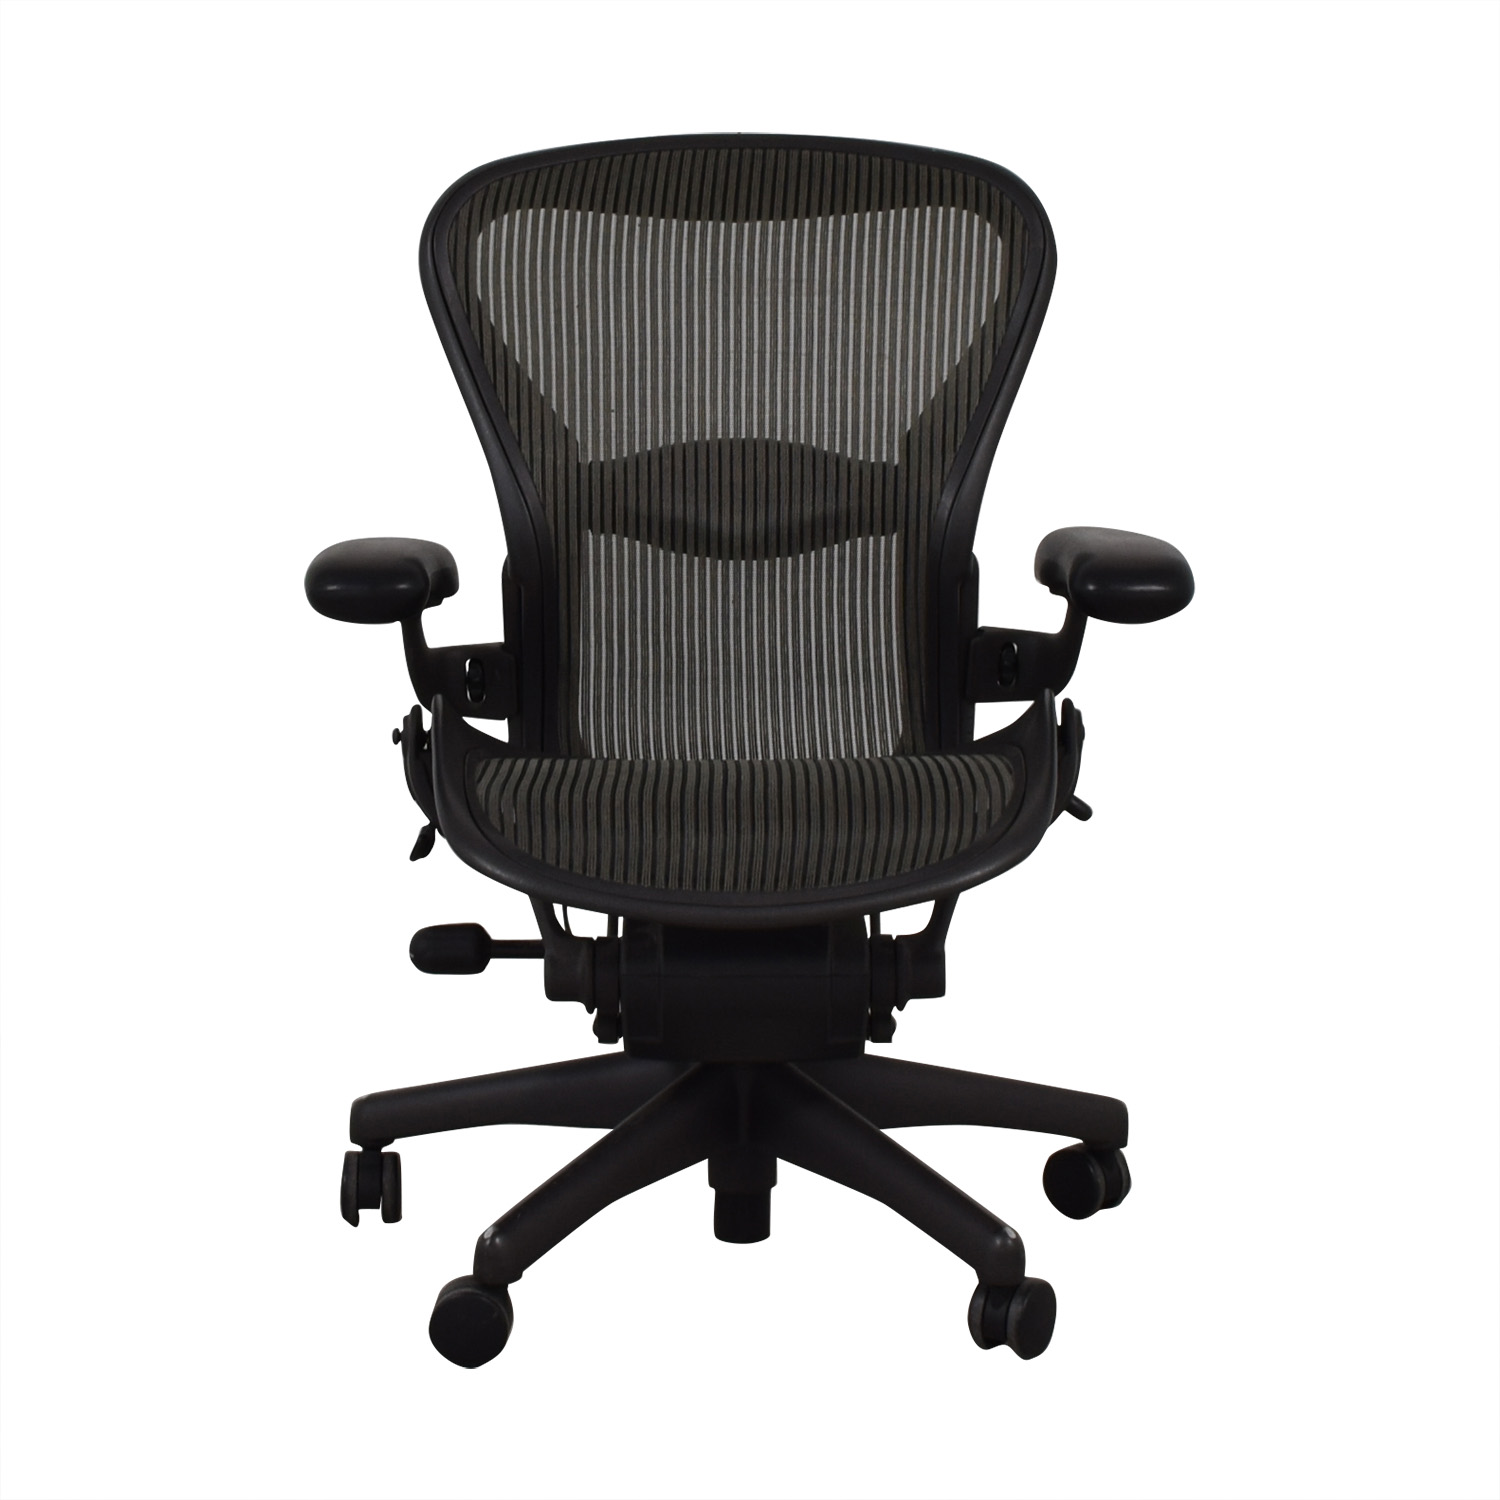 Herman Miller Herman Miller Aeron Black Office Chair nj